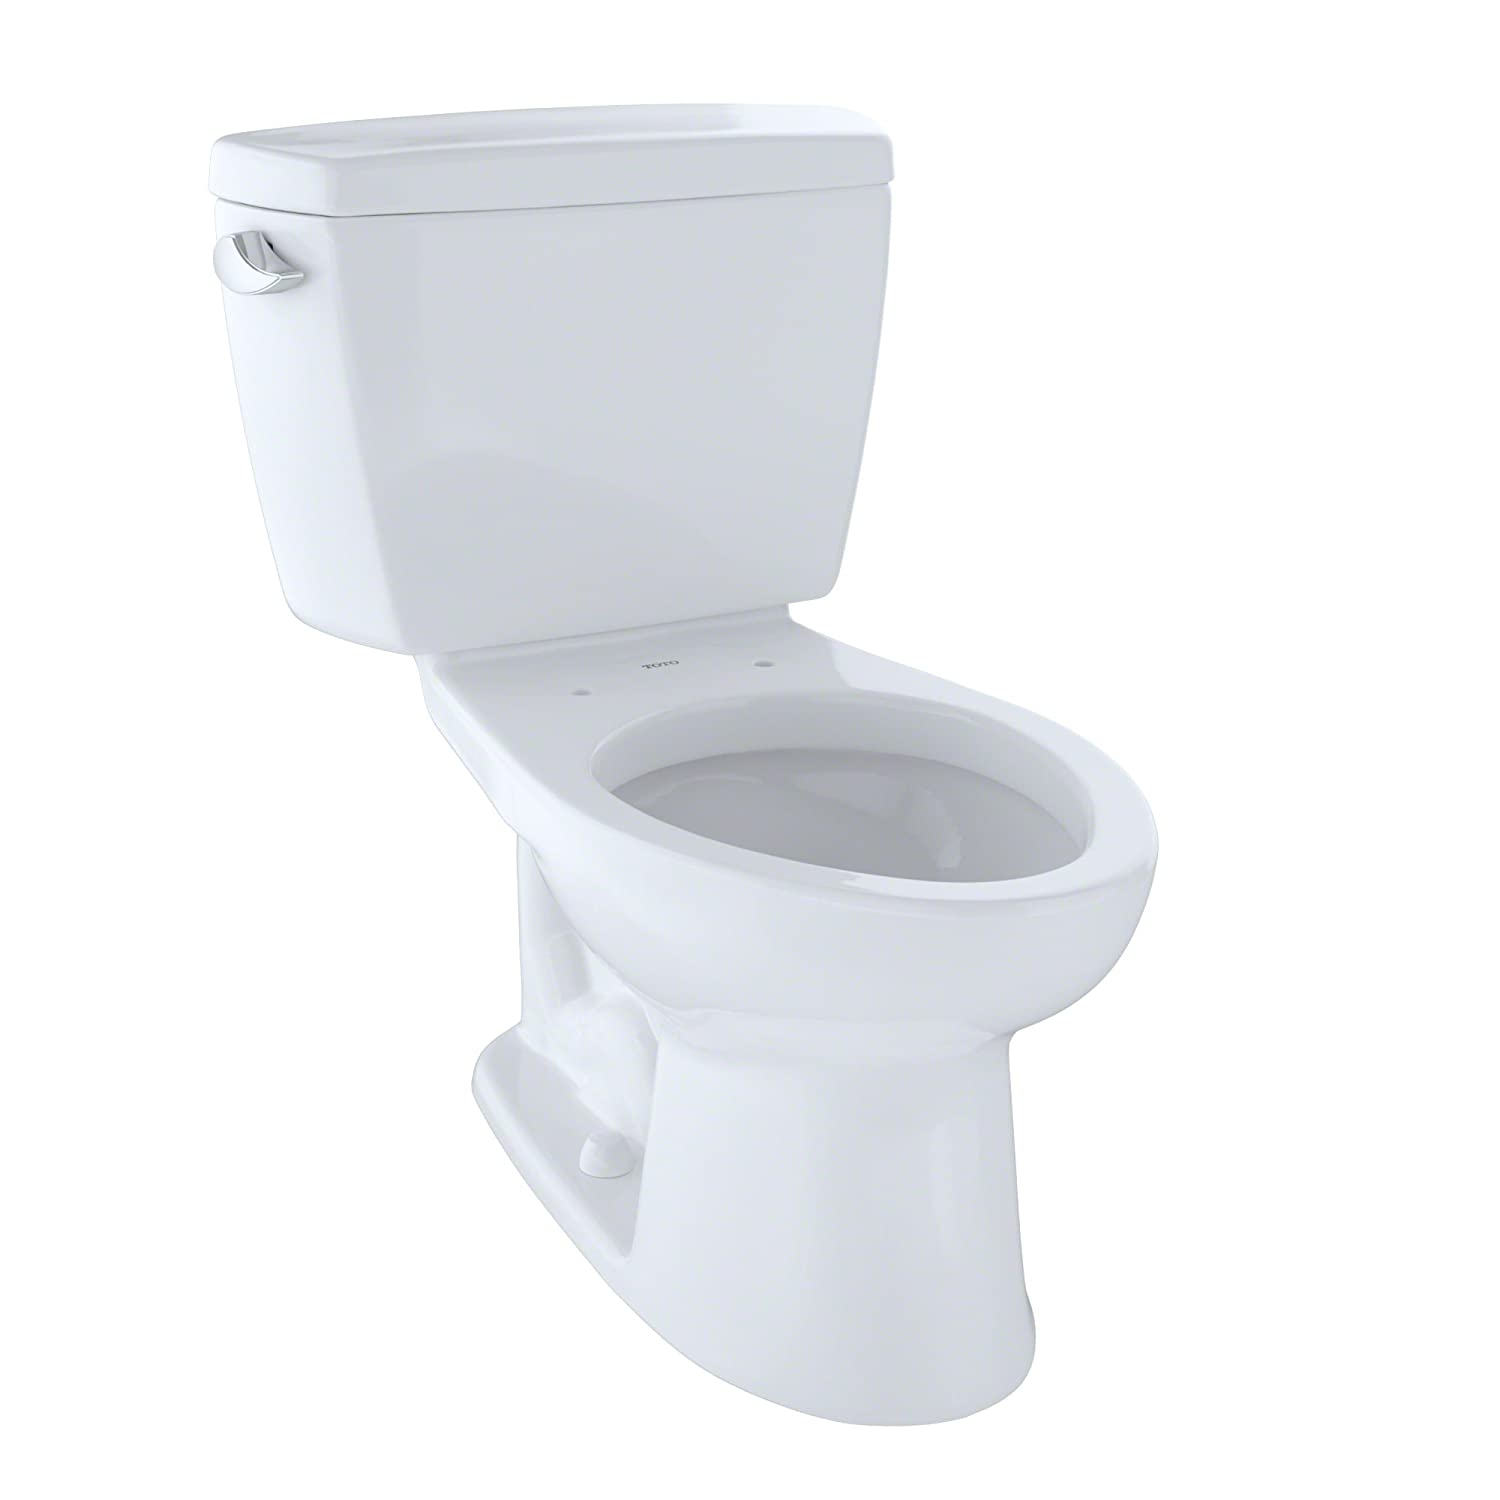 Best Toilets Under $200, $300 to $400 Reviews in 2020 4